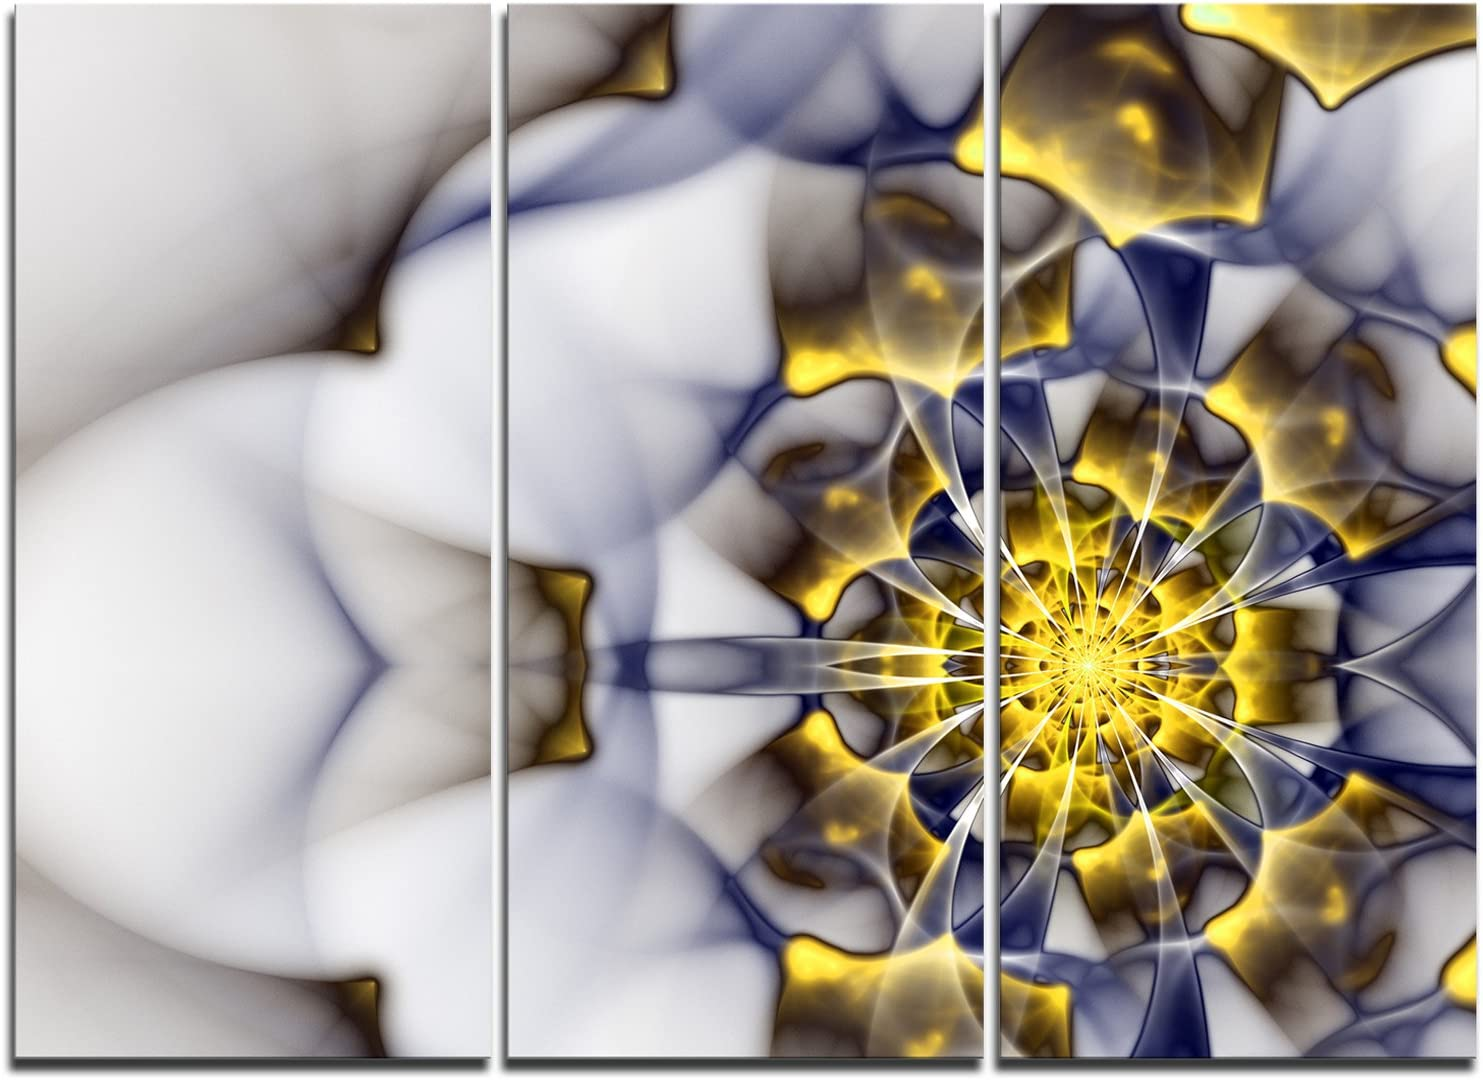 Designart 日本正規代理店品 Unique 業界No.1 Gold and White Floral Can Fractal Flower-Modern